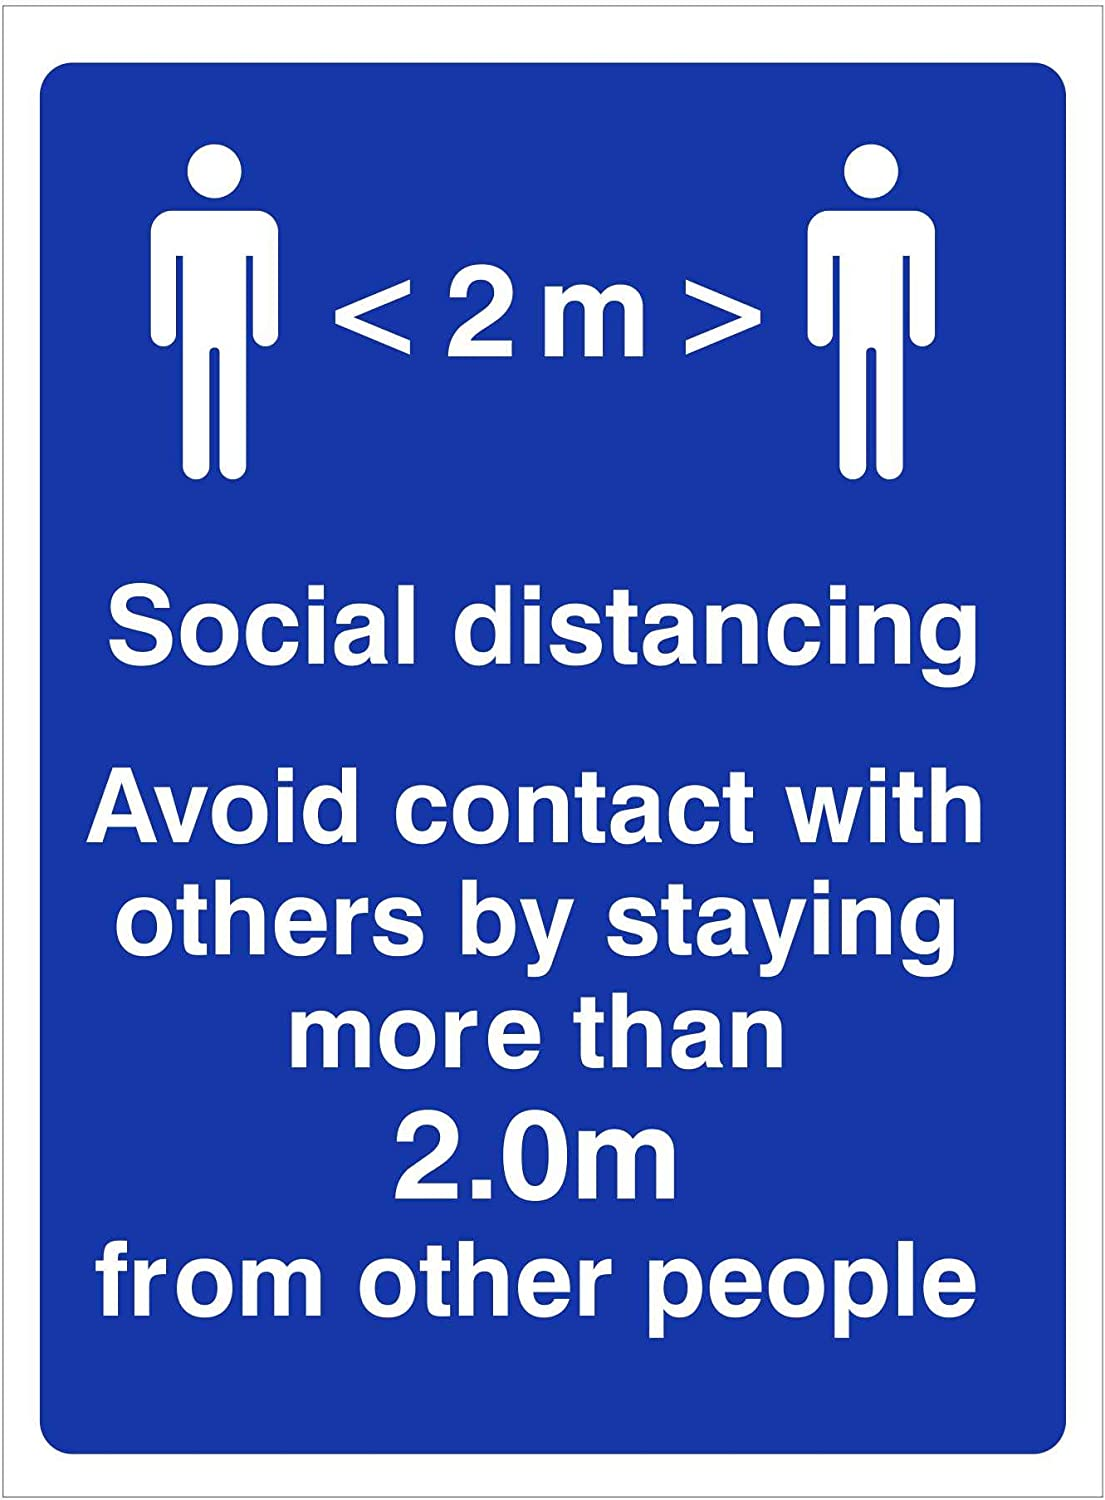 KEEP SAFE STAND 2M APART 300mm x 100mm Self adhesive vinyl sticker to fight the spread of viruses. Social distancing sign